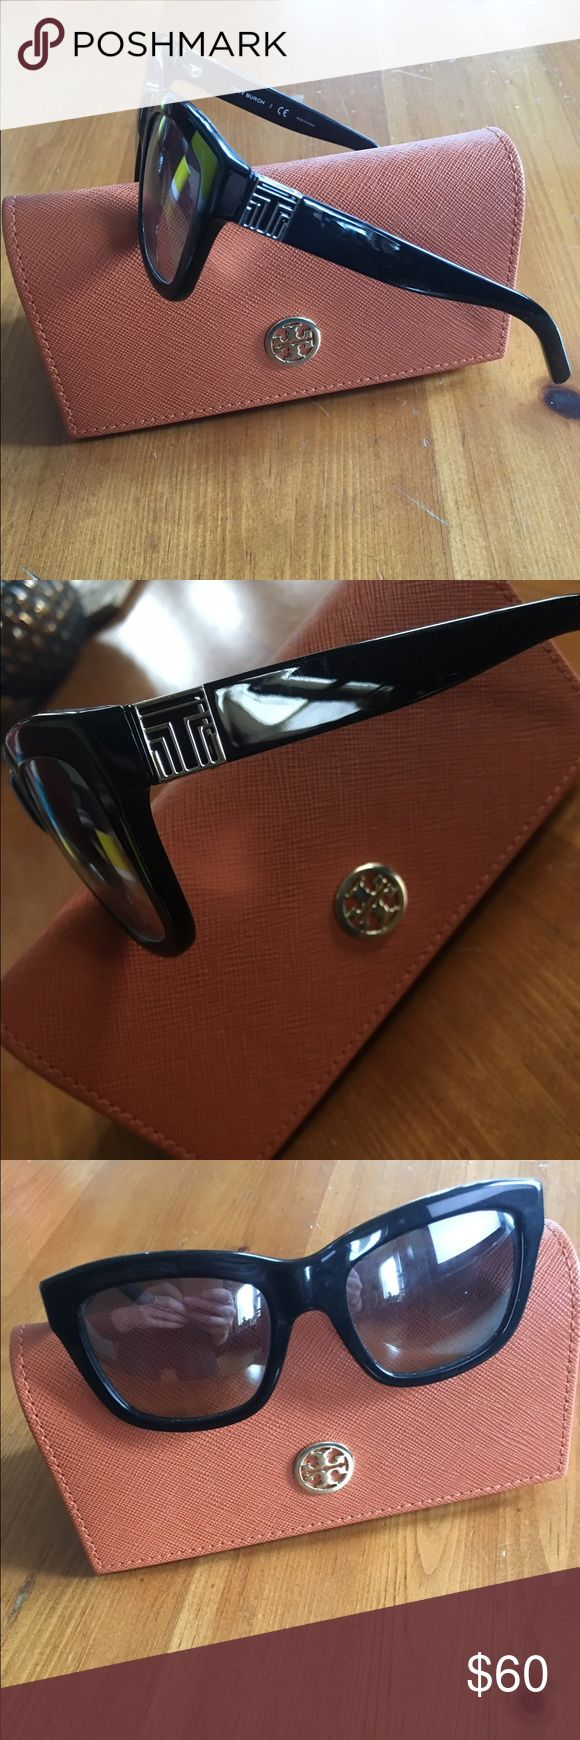 Authentic Tory Burch Sunglasses Authentic Tory Burch Sunglasses. All black, dark lens with slight silver film. The film has a flat shine. Silver hardware. Silver Tory Ts on both arms. Comes with case. Tory Burch Accessories Sunglasses